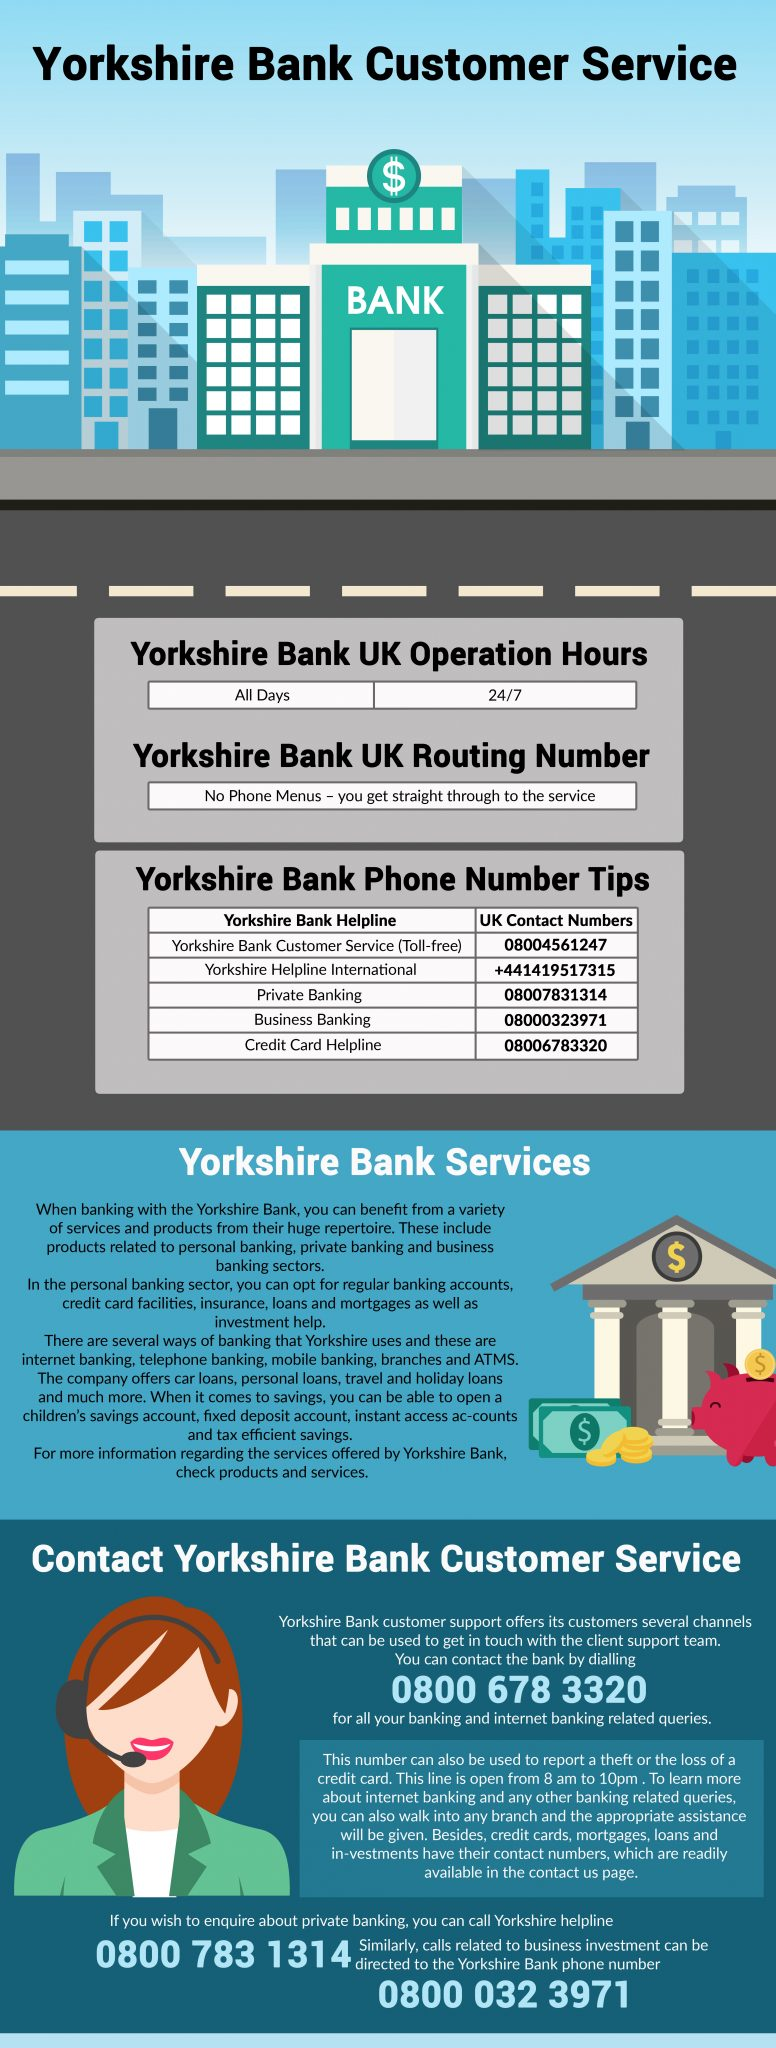 Yoprkshire customer service numbers